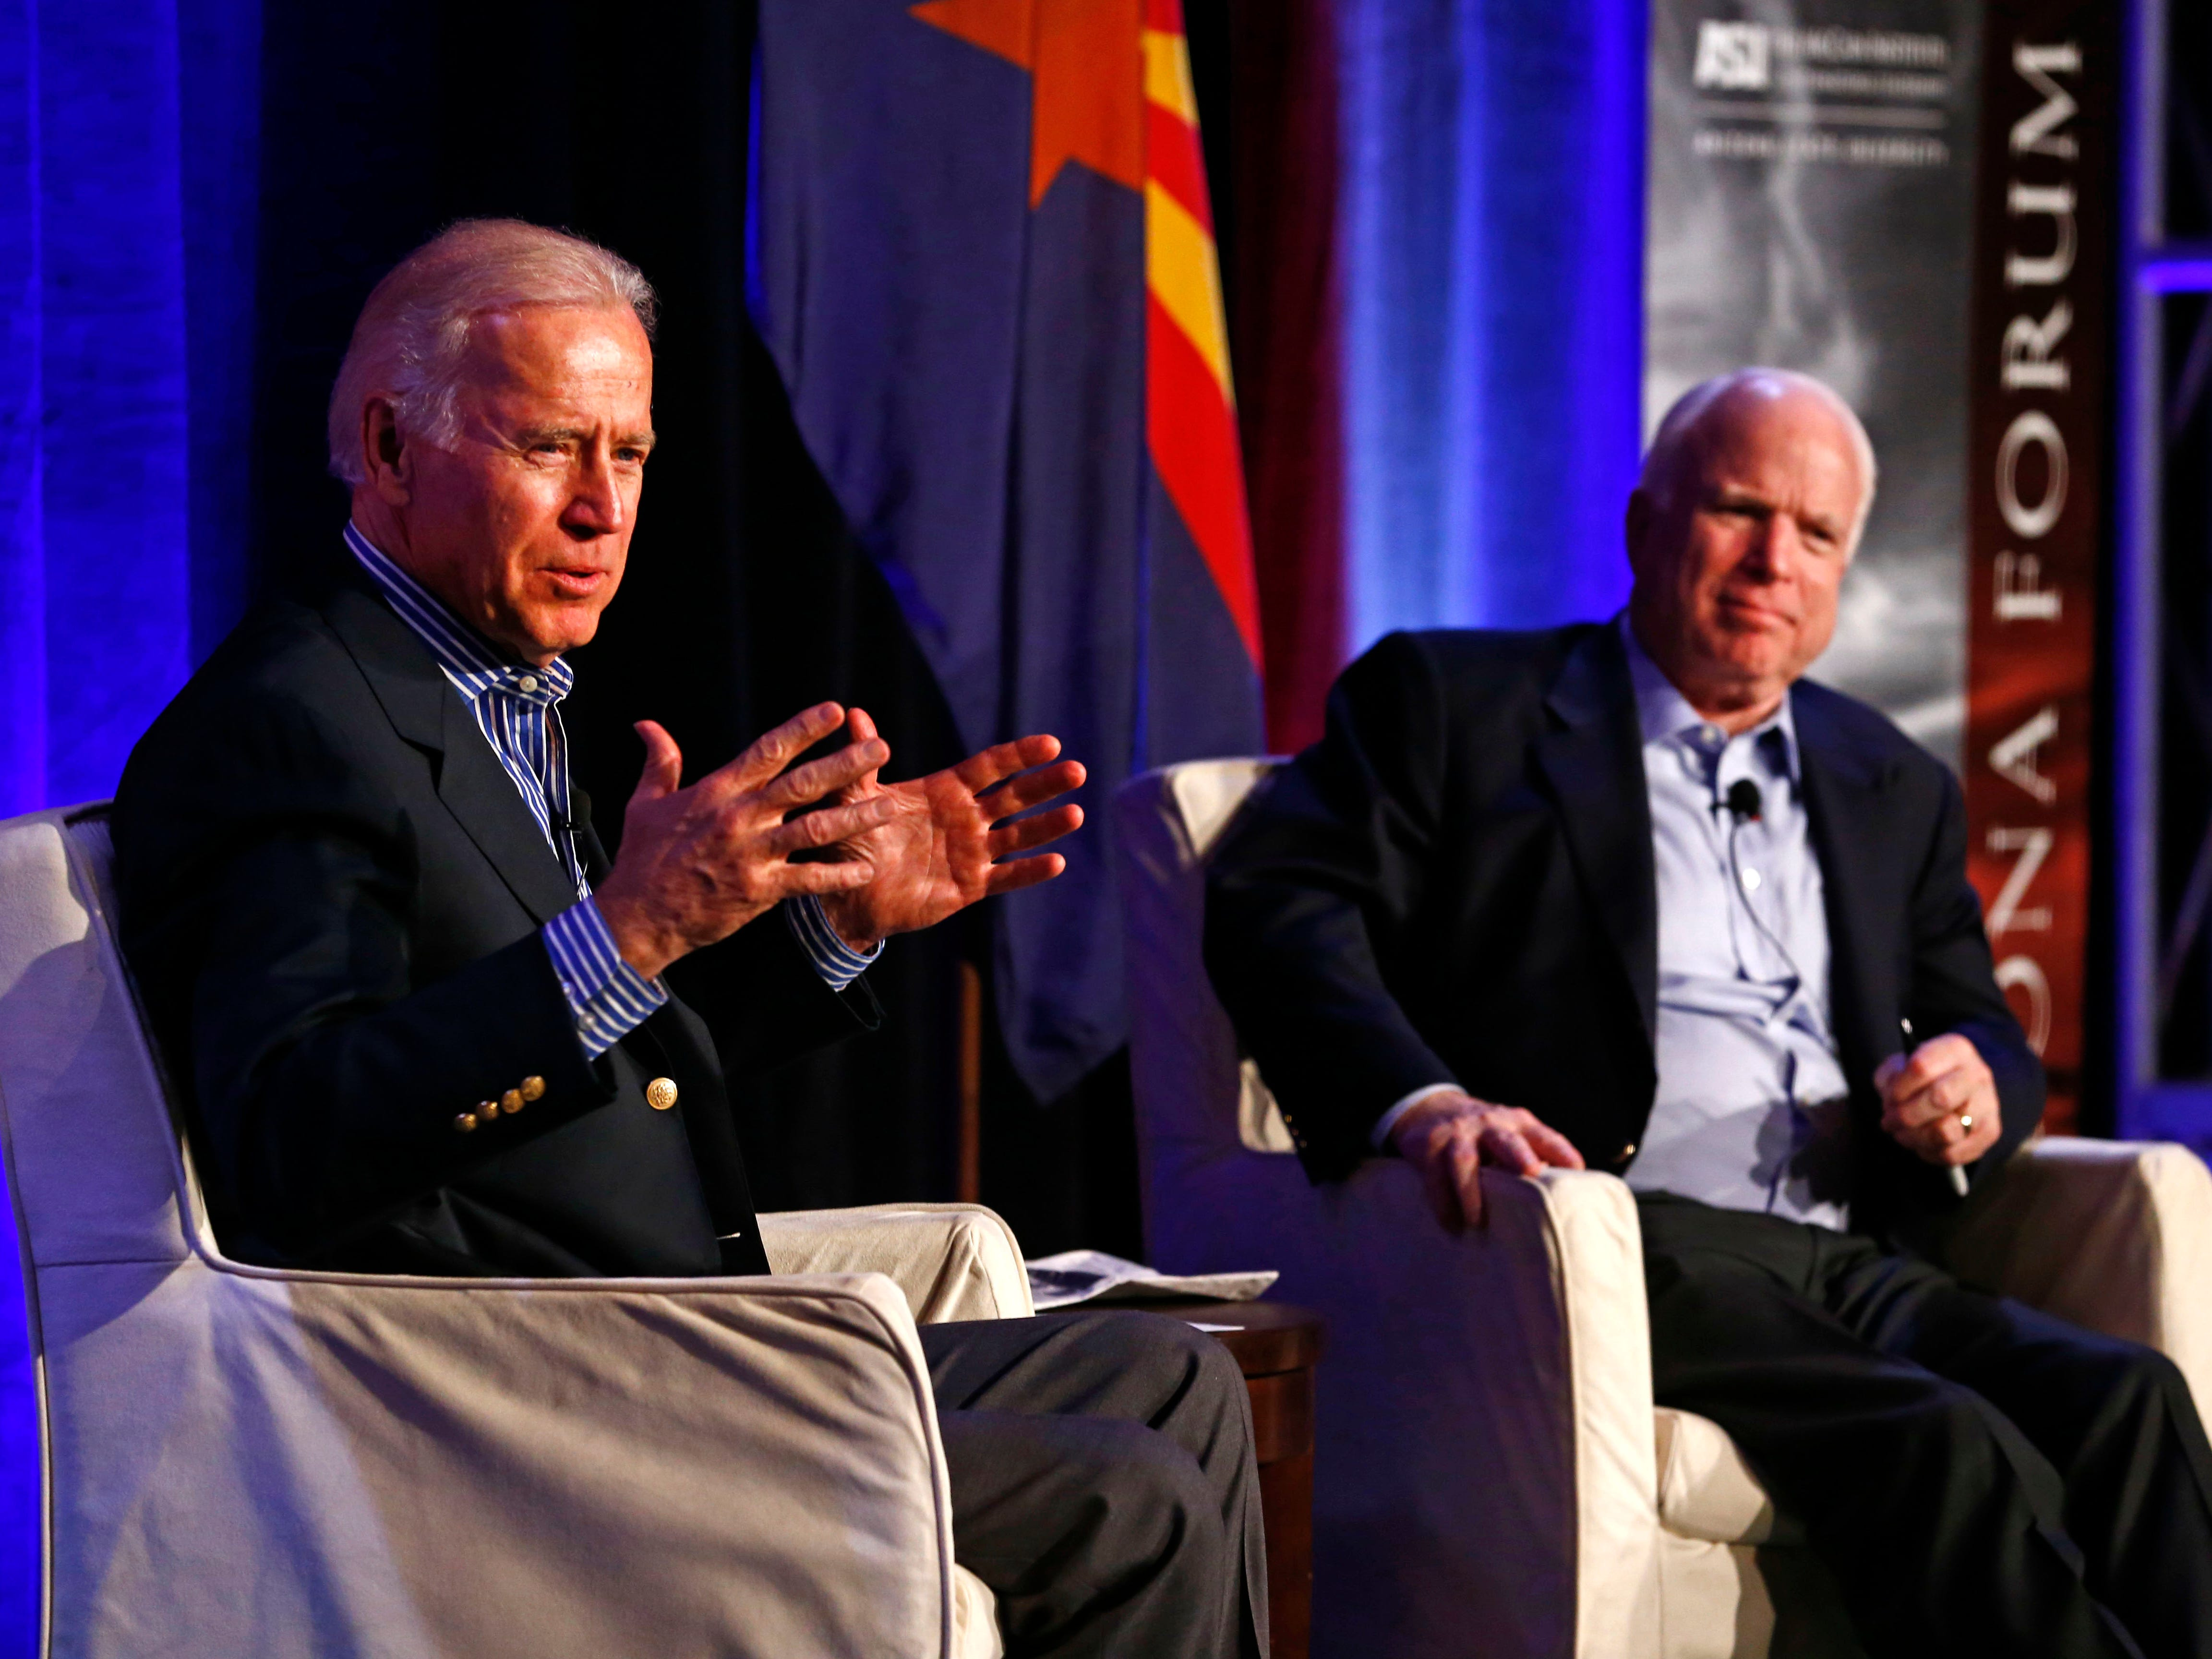 Vice President Joe Biden and Senator John McCain, R-Ariz., share the stage at the McCain Institute for International Leadership's 2013 Sedona Forum on Friday, April 26, 2013 at the Enchantment Resort in Sedona, AZ. The institute focuses on foreign-policy and national-security issues. Photo by Rob Schumacher/The Arizona Republic (Via OlyDrop)